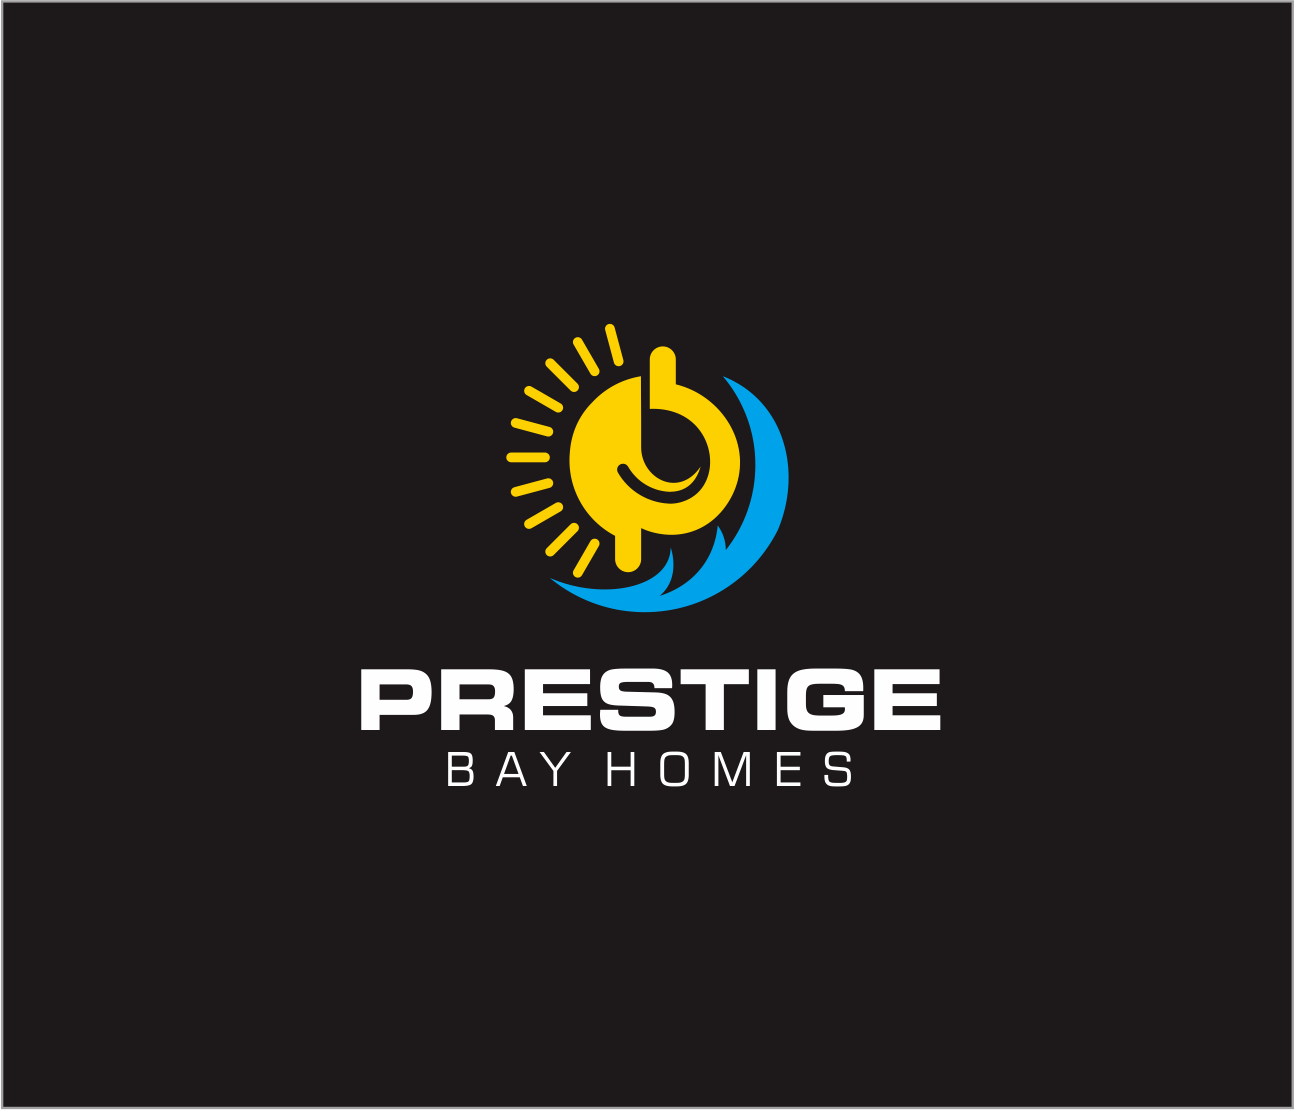 Logo Design by Armada Jamaluddin - Entry No. 157 in the Logo Design Contest Imaginative Logo Design for Prestige Bay Homes.